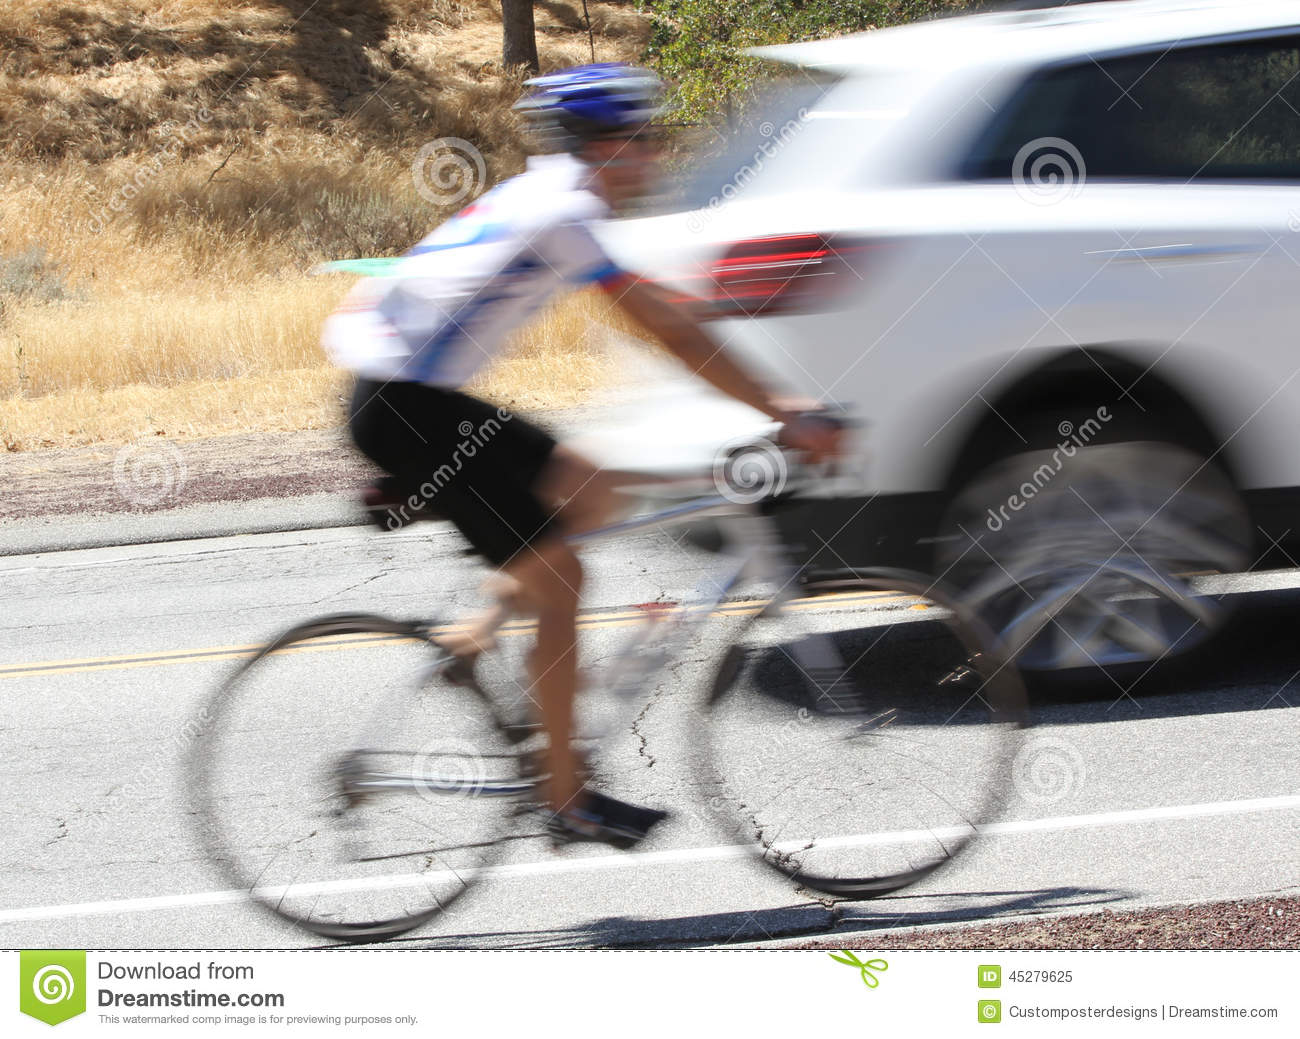 Download A Blurred Image Of A Bicycle And Car On The Road. Stock Image - Image of adult, blur: 45279625